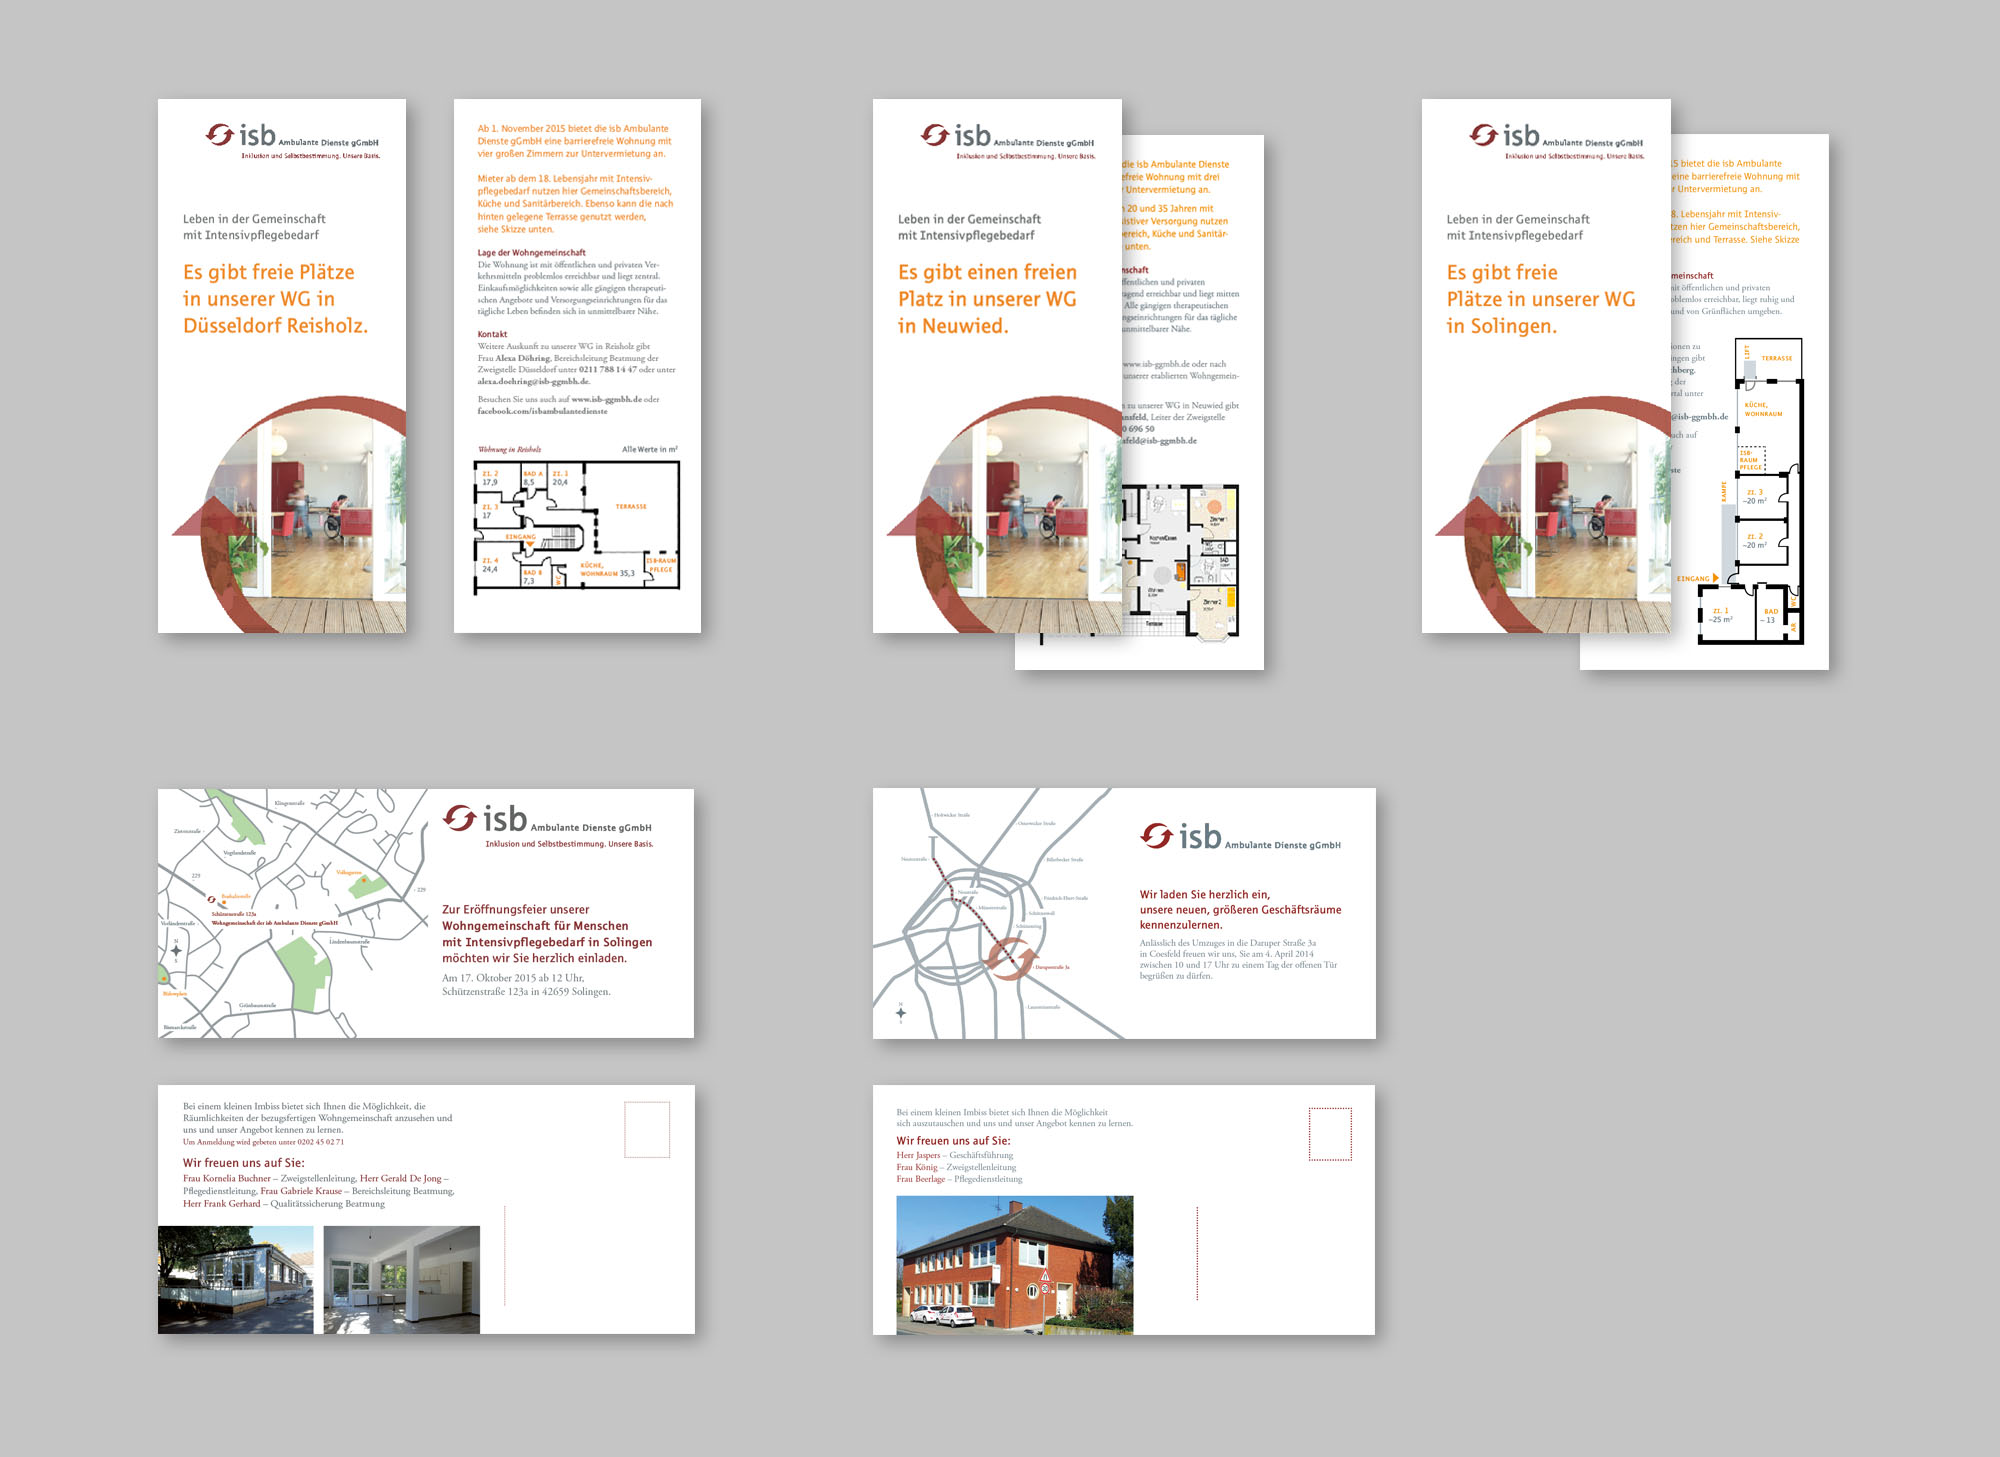 isb Intensivpflegedienst Corporate Design